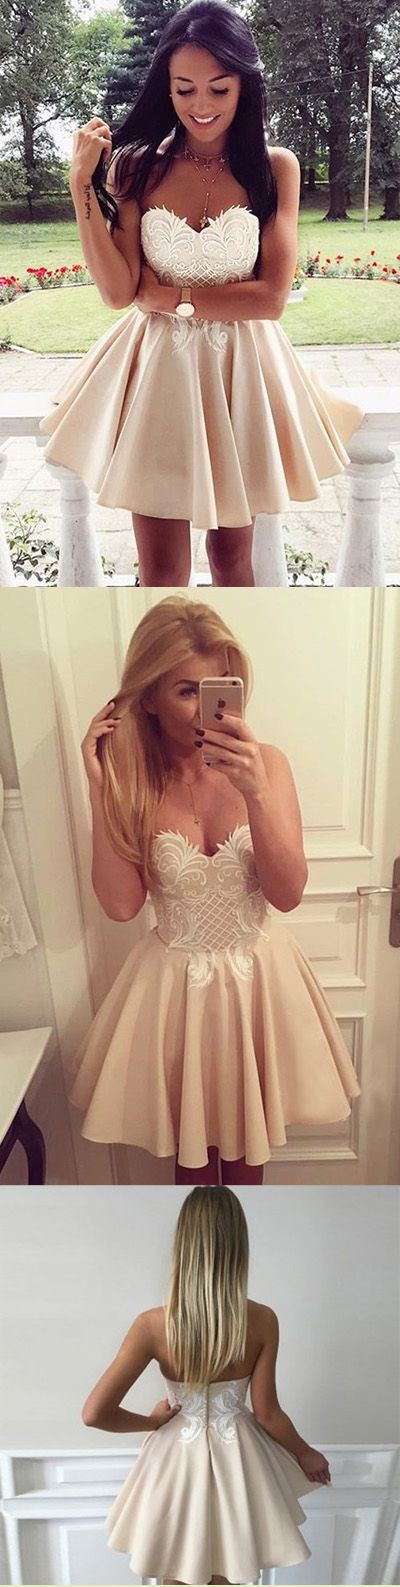 Sweetheart Strapless Homecoming Dresses,Open Back Appliques Short Prom Dress H155 Short Prom Dresses, Homecoming Dresses, Prom Gowns, Party Dresses, Graduation Dresses, Short Prom Dresses, Gowns Prom, Cheap Prom Gowns on Line